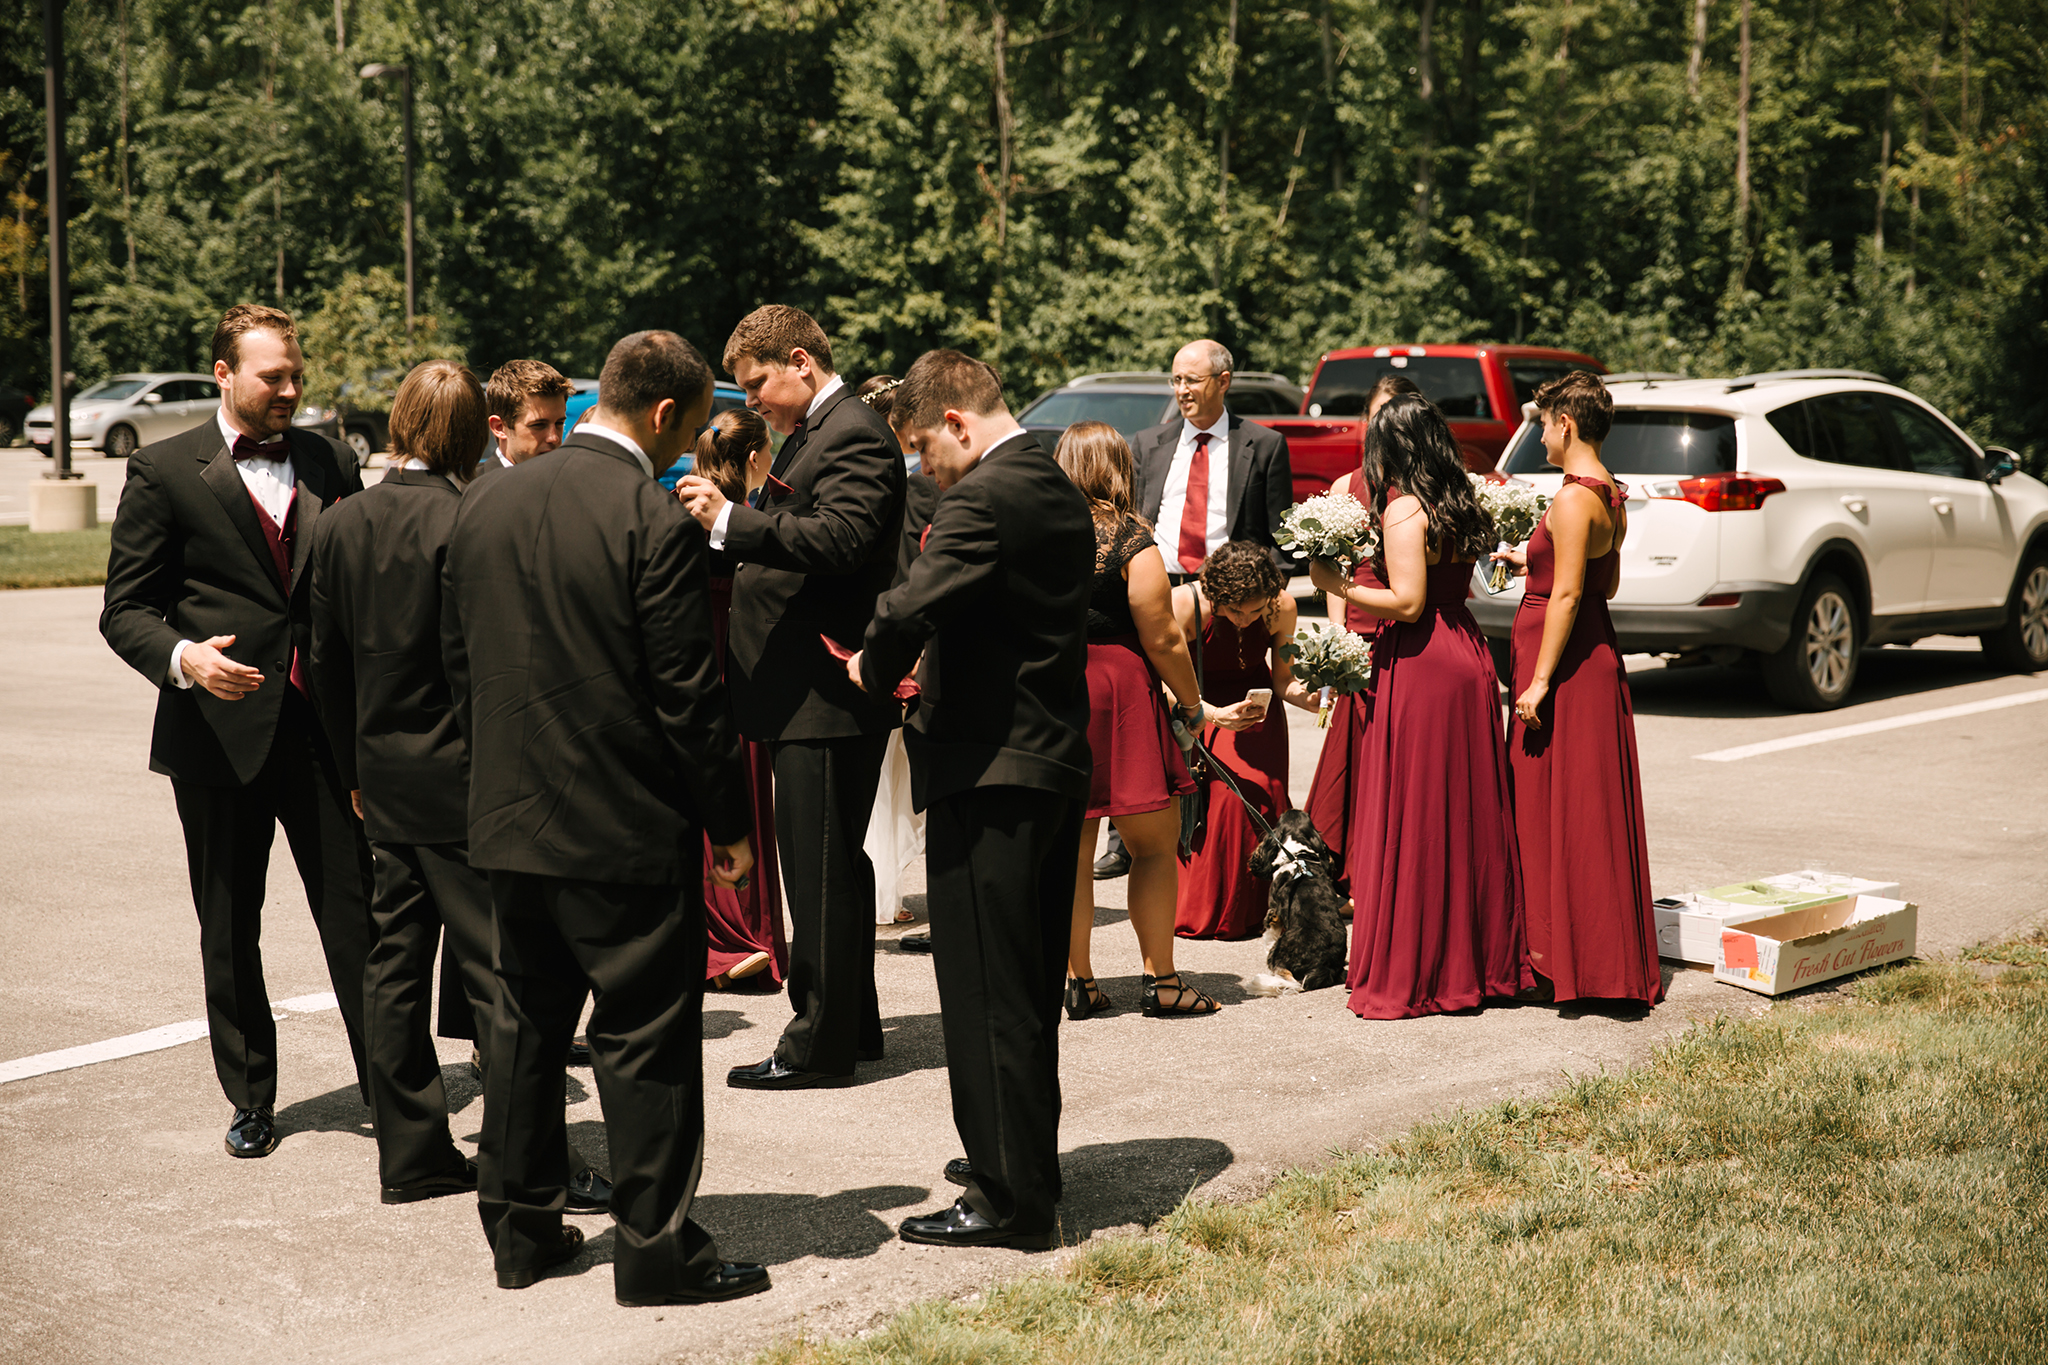 Red Photographic_COHEN_Wedding_Cleveland_52.jpg